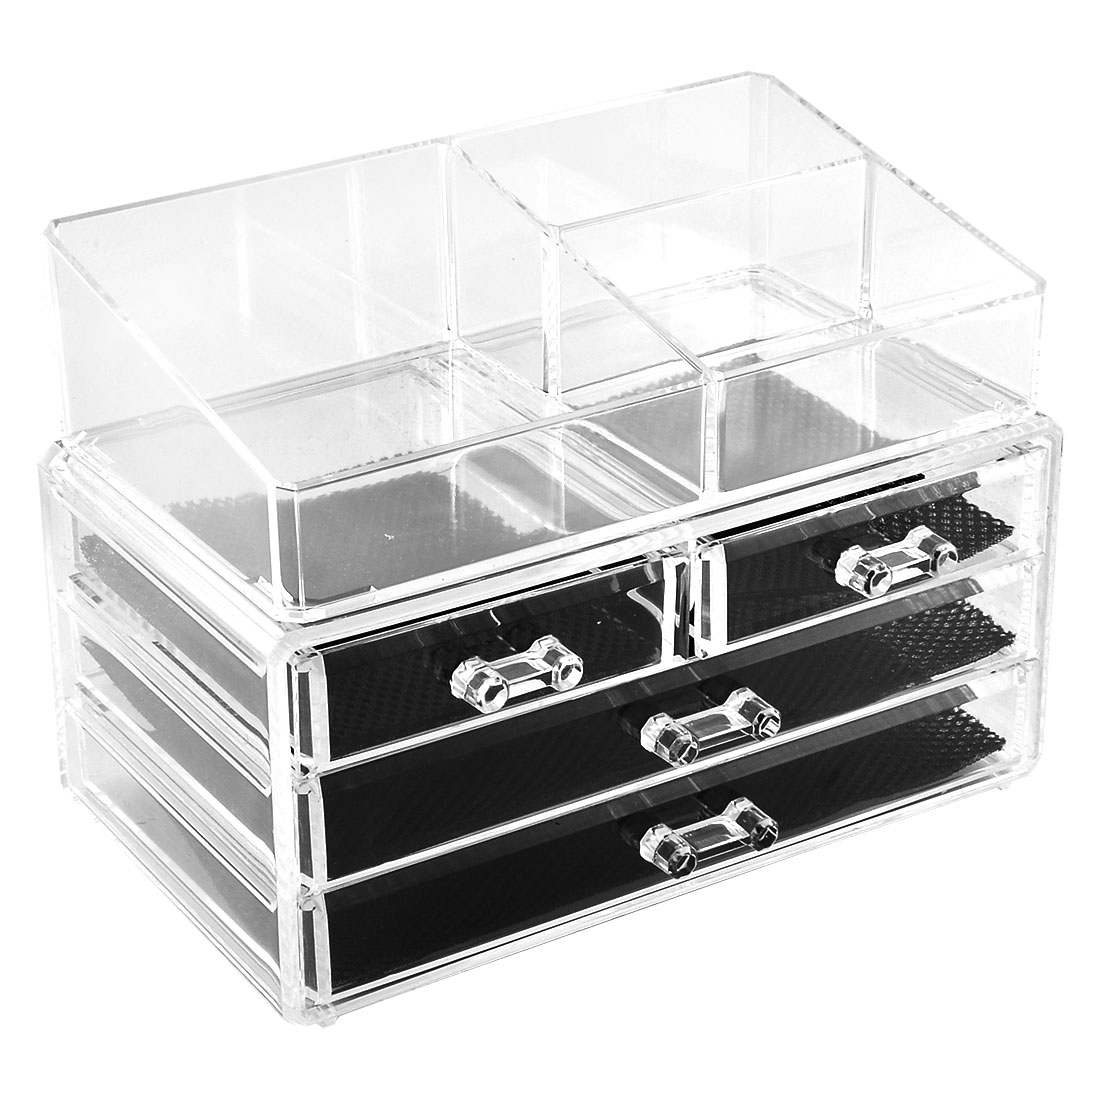 Home Acrylic Jewelry Cosmetic Box Storage Case Organizer Holder Set 2 in 1